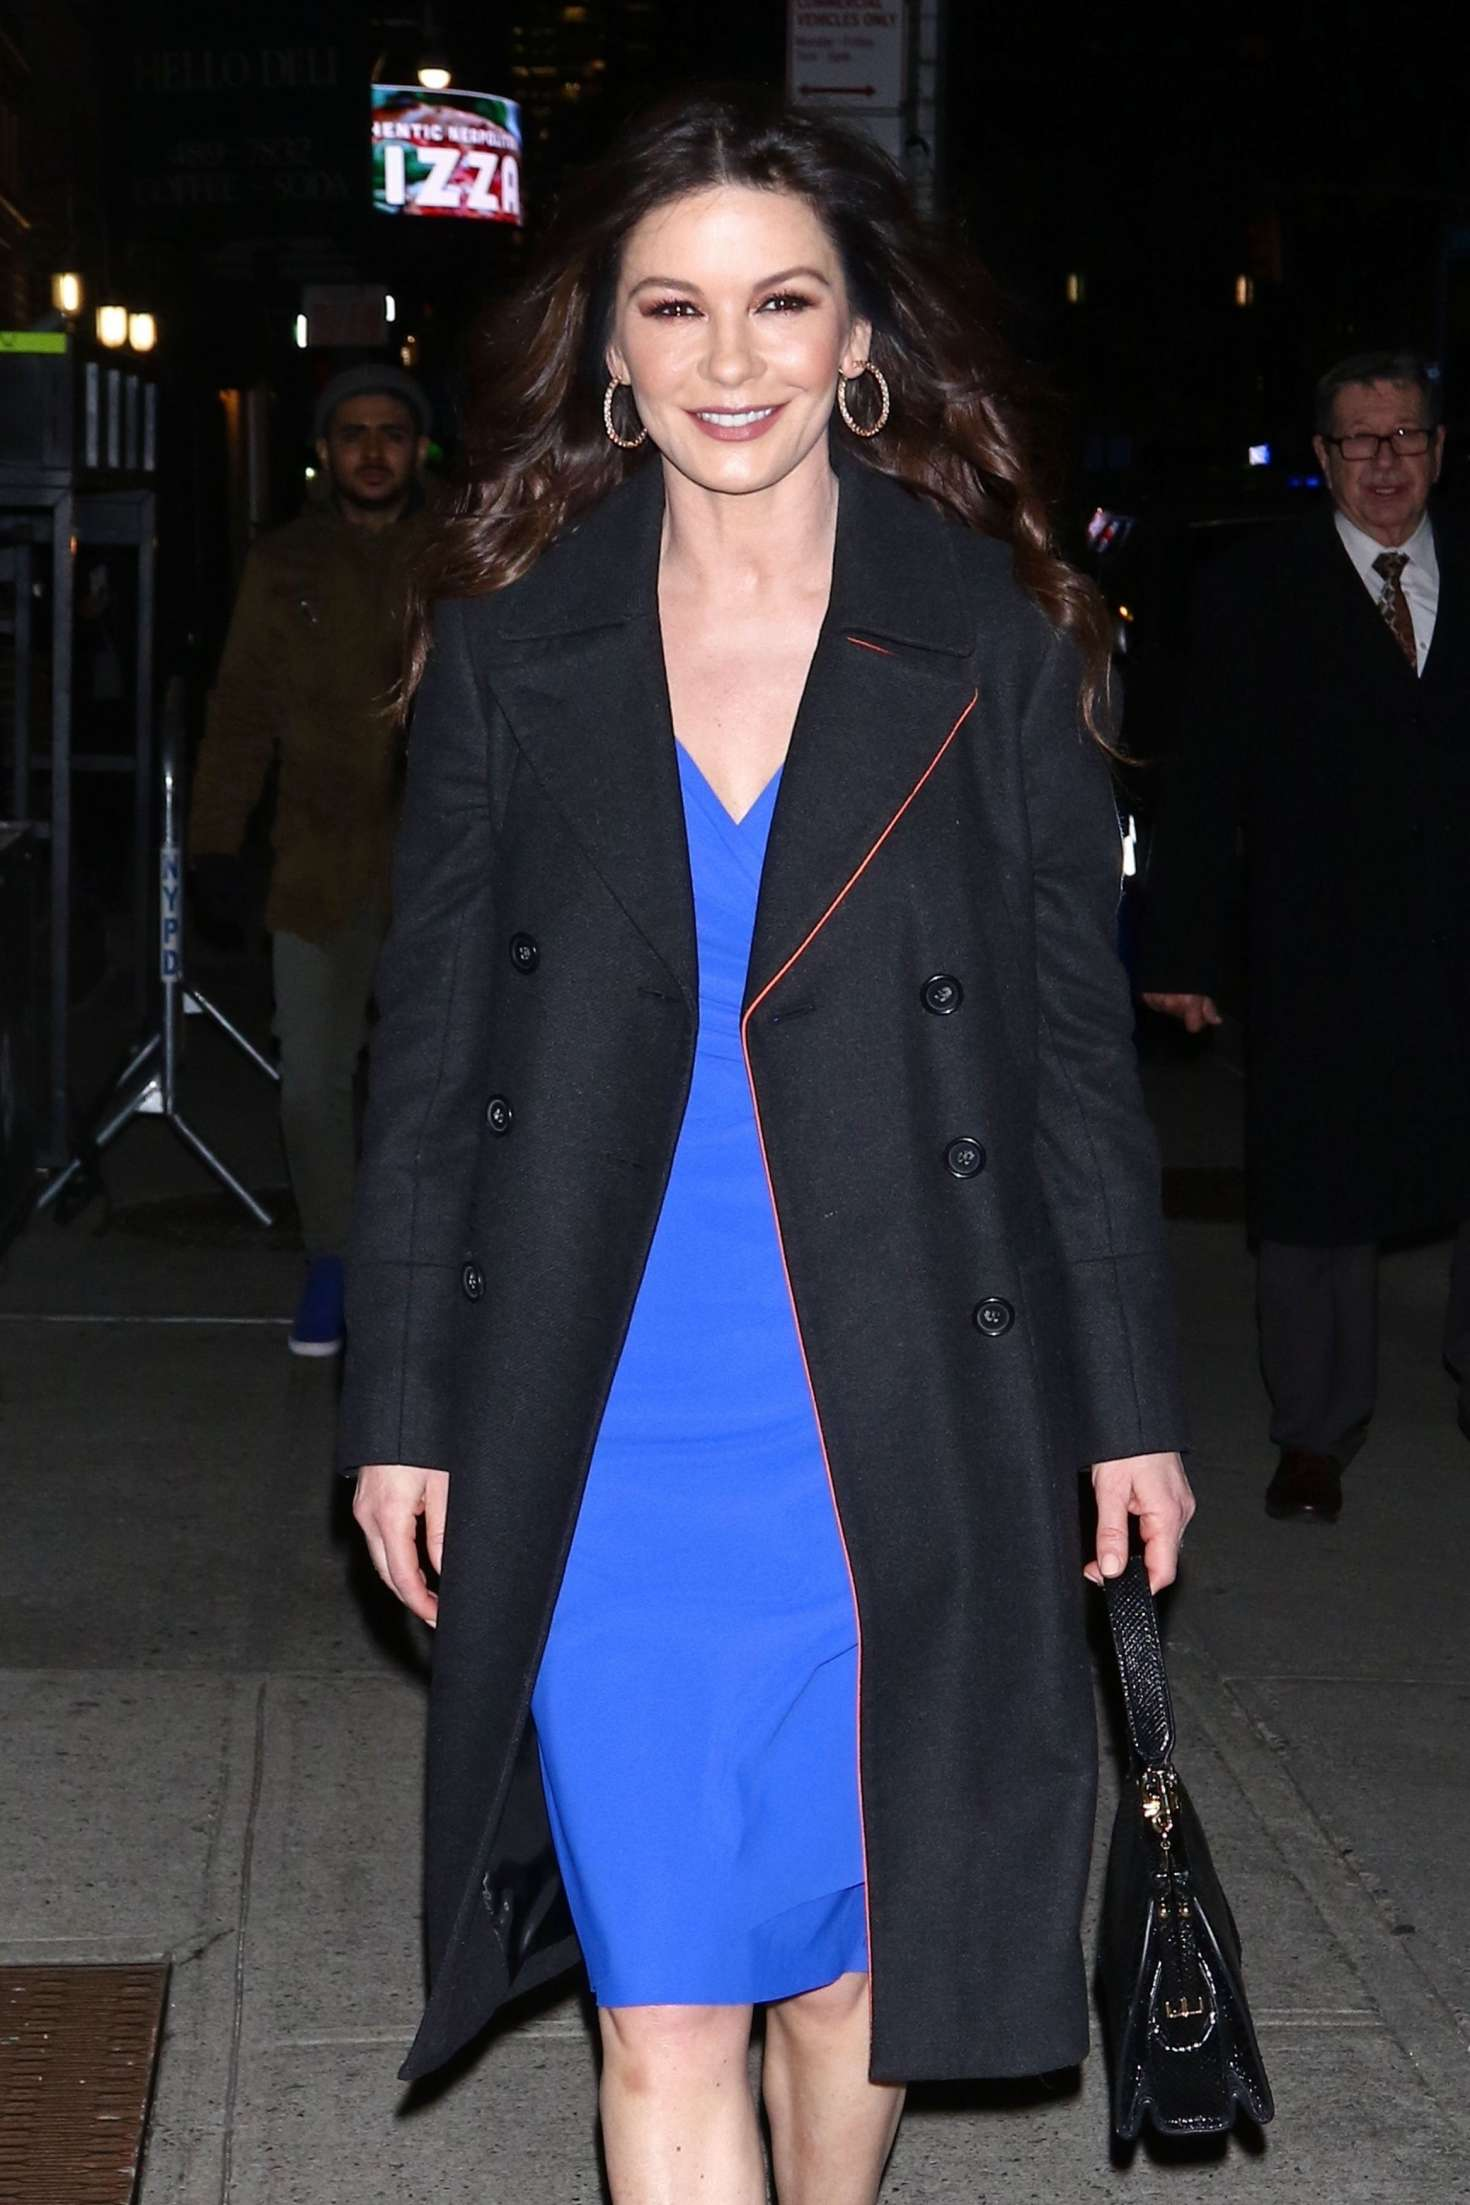 Catherine Zeta-Jones - Night out in New York City